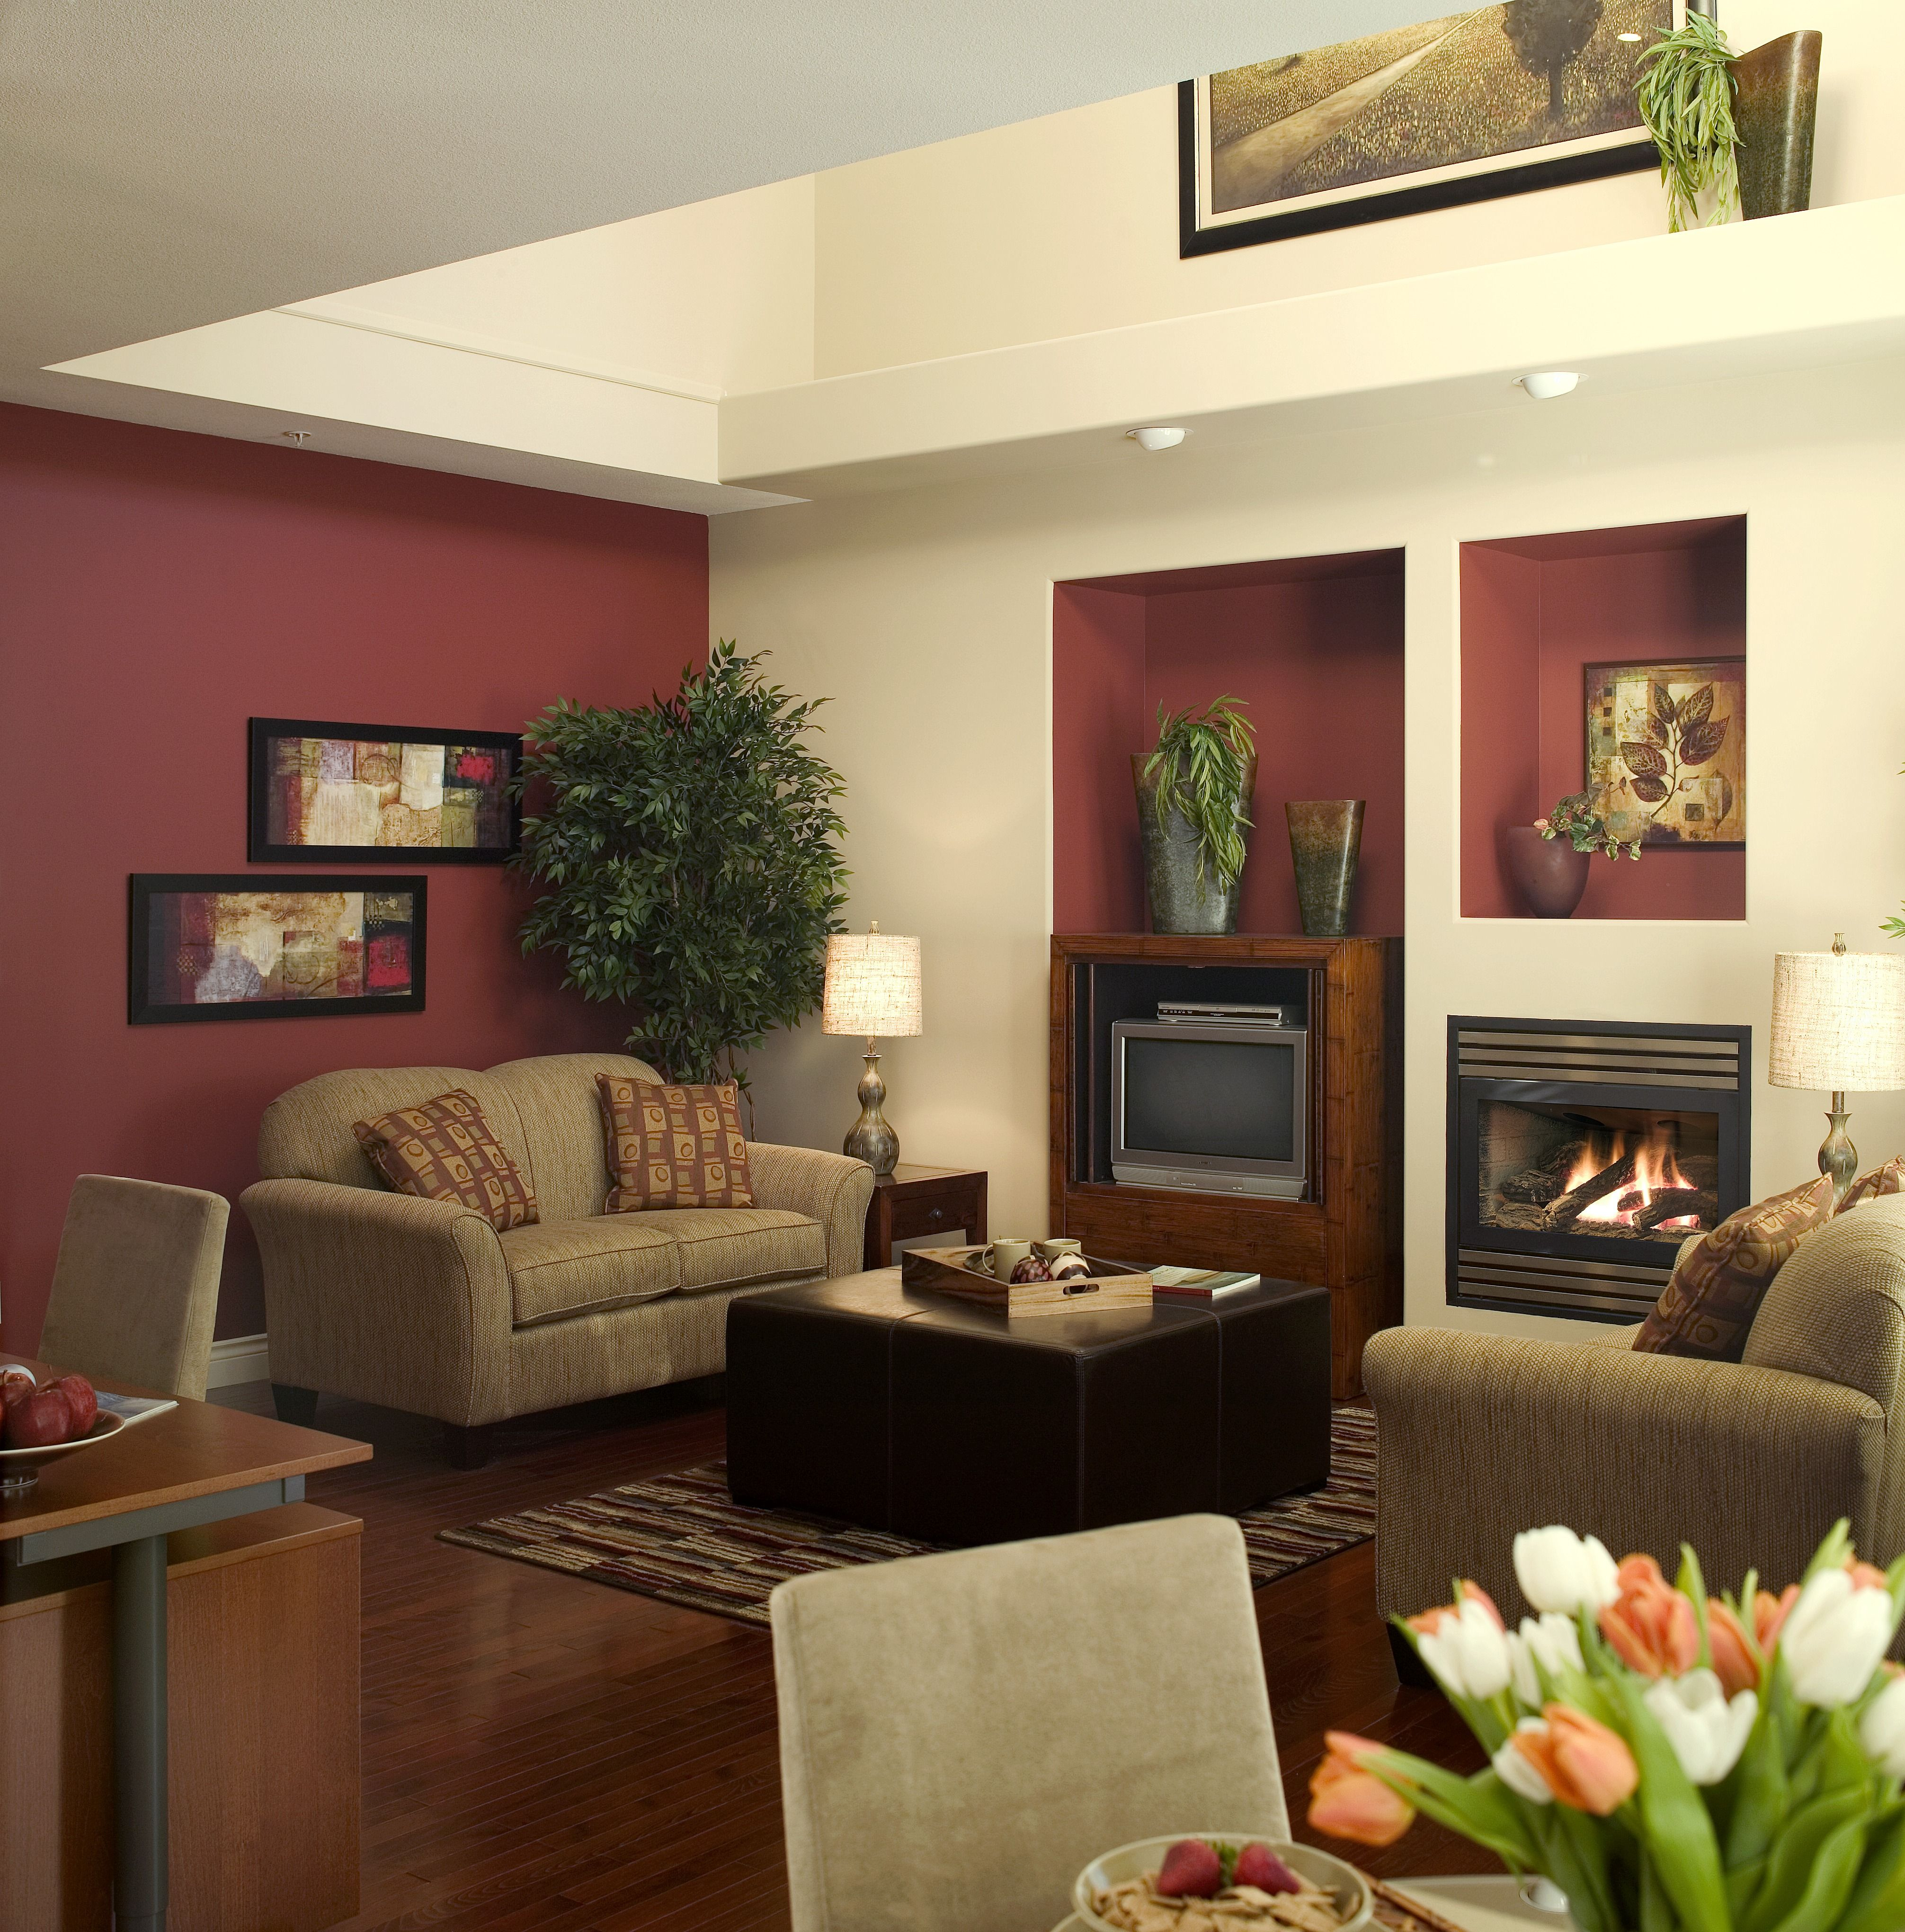 Best Popular House Paint Colors For 2014 Burgundy Living Room 400 x 300